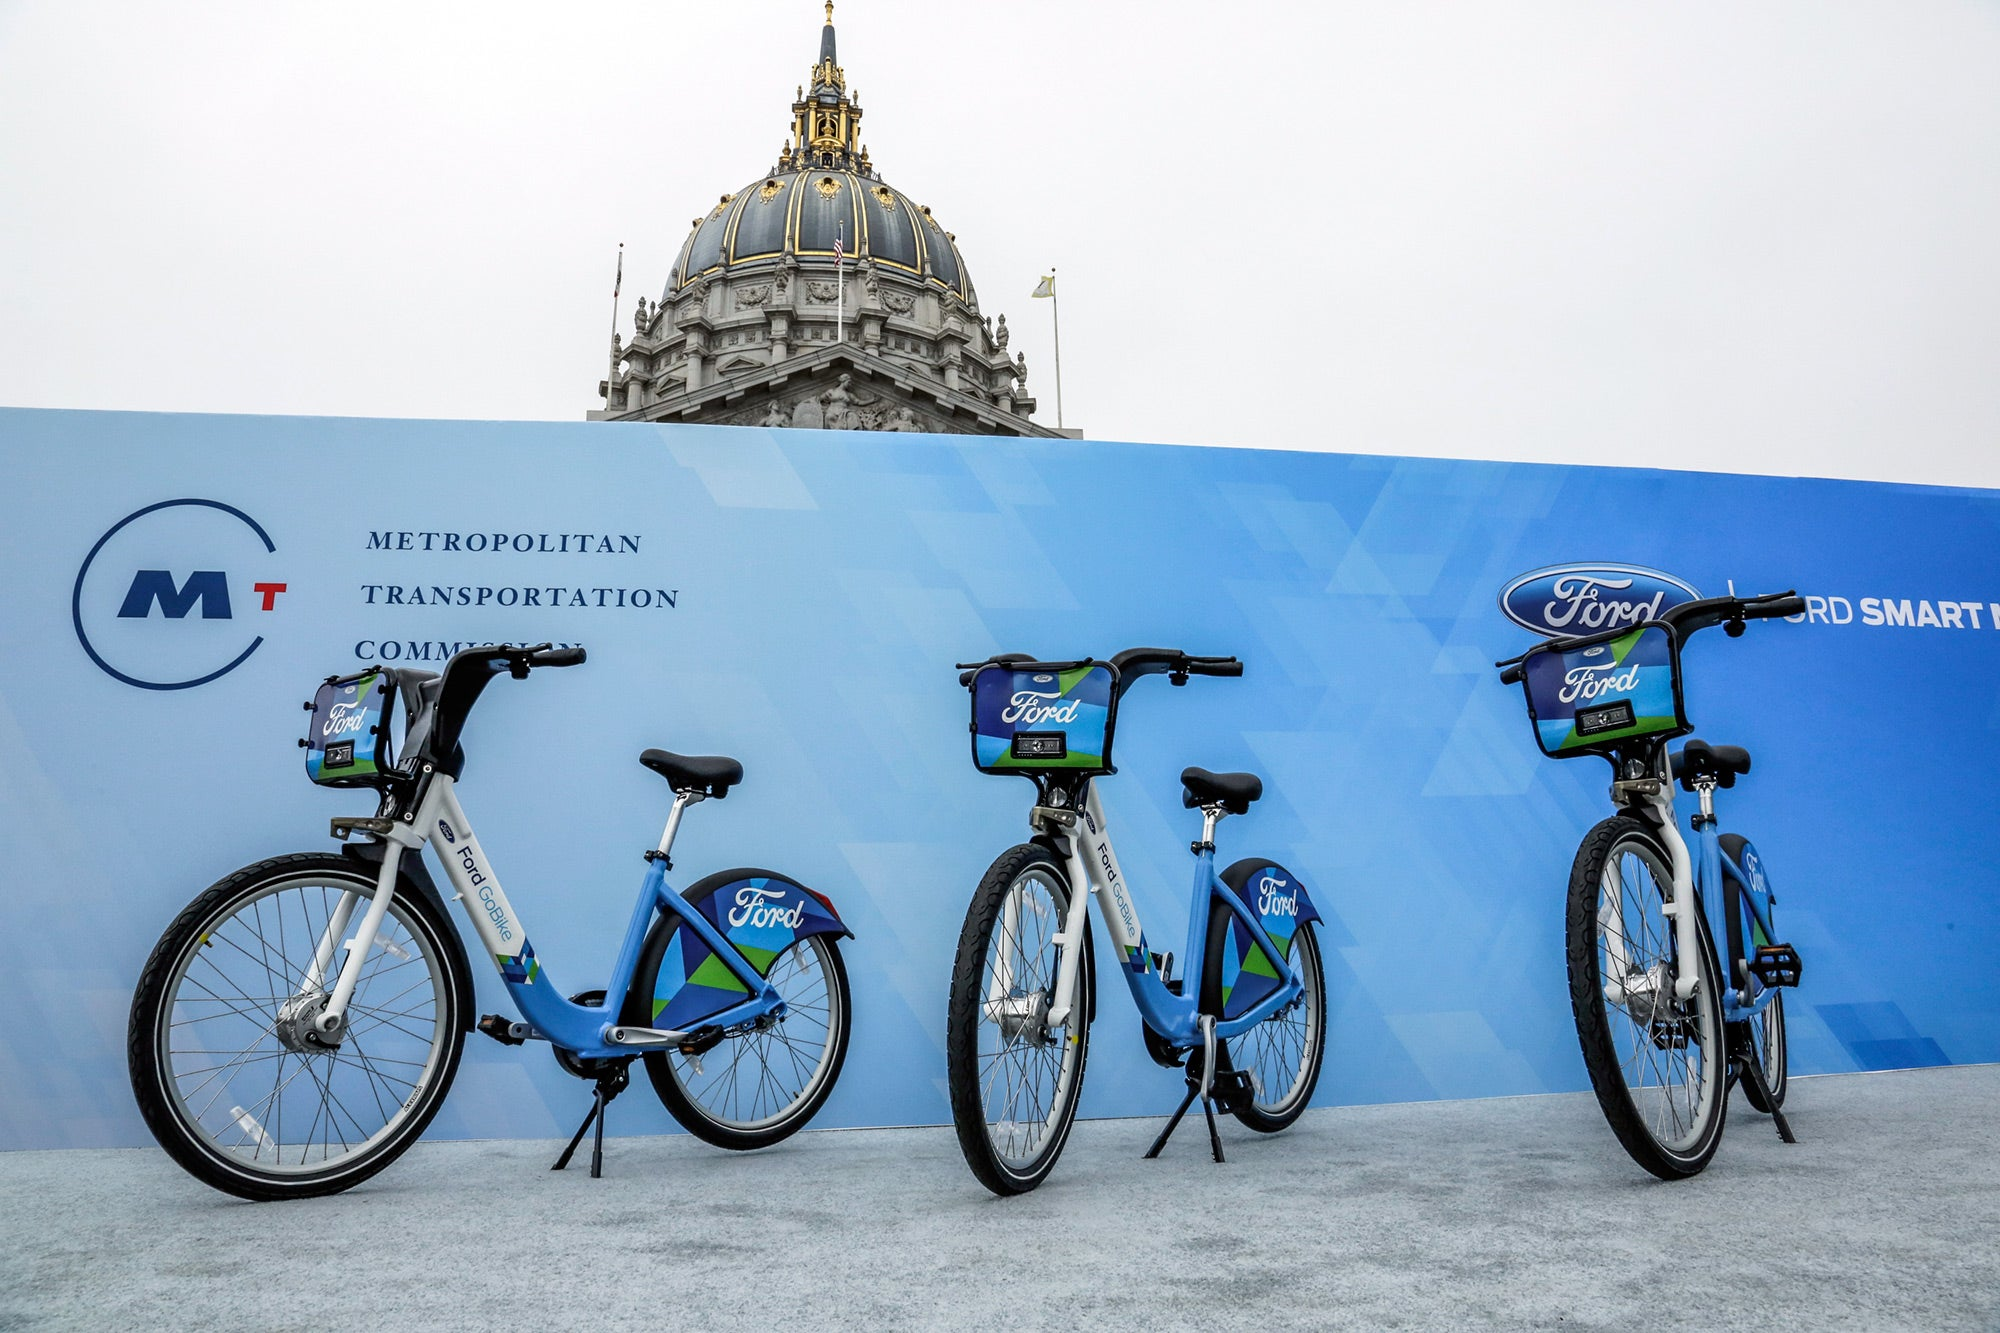 Ford GoBike bicycles